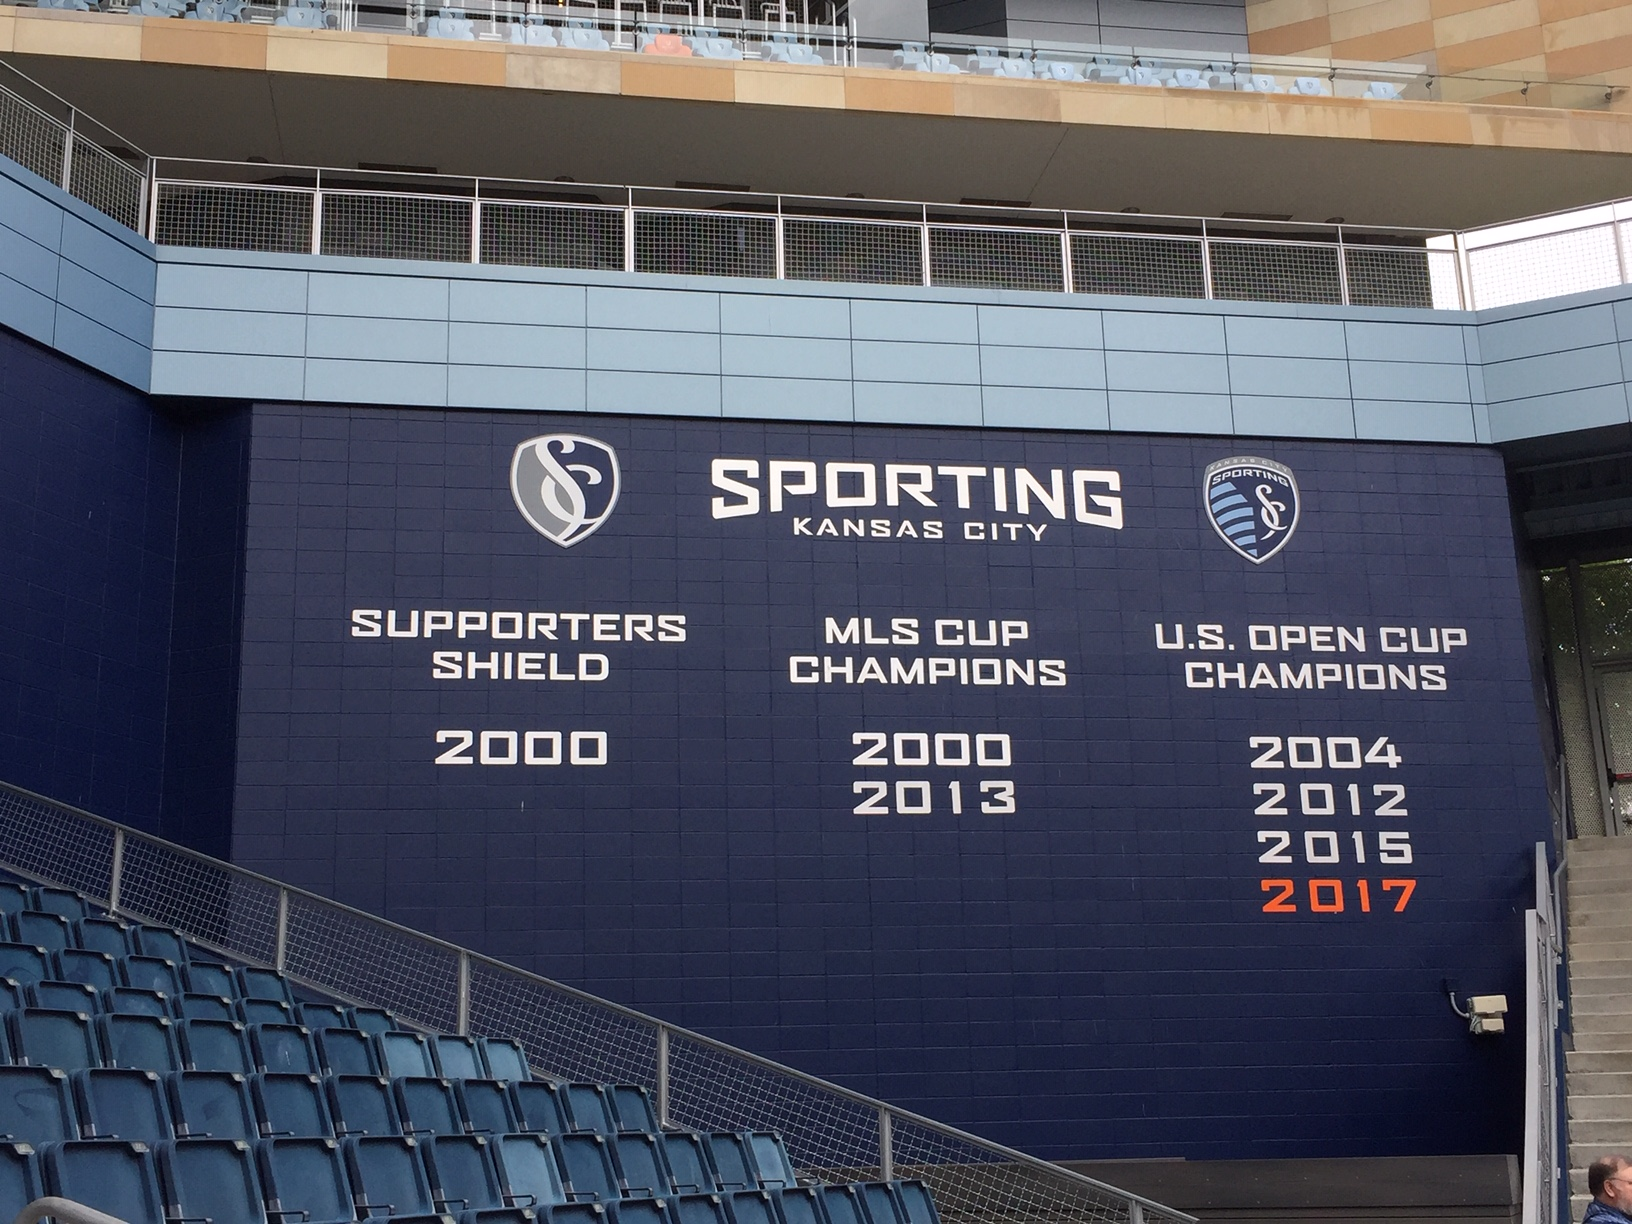 Wall of accomplishment inside Children's Mercy Park, home of Sporting Kansas City  (Photo by J. Schafer)